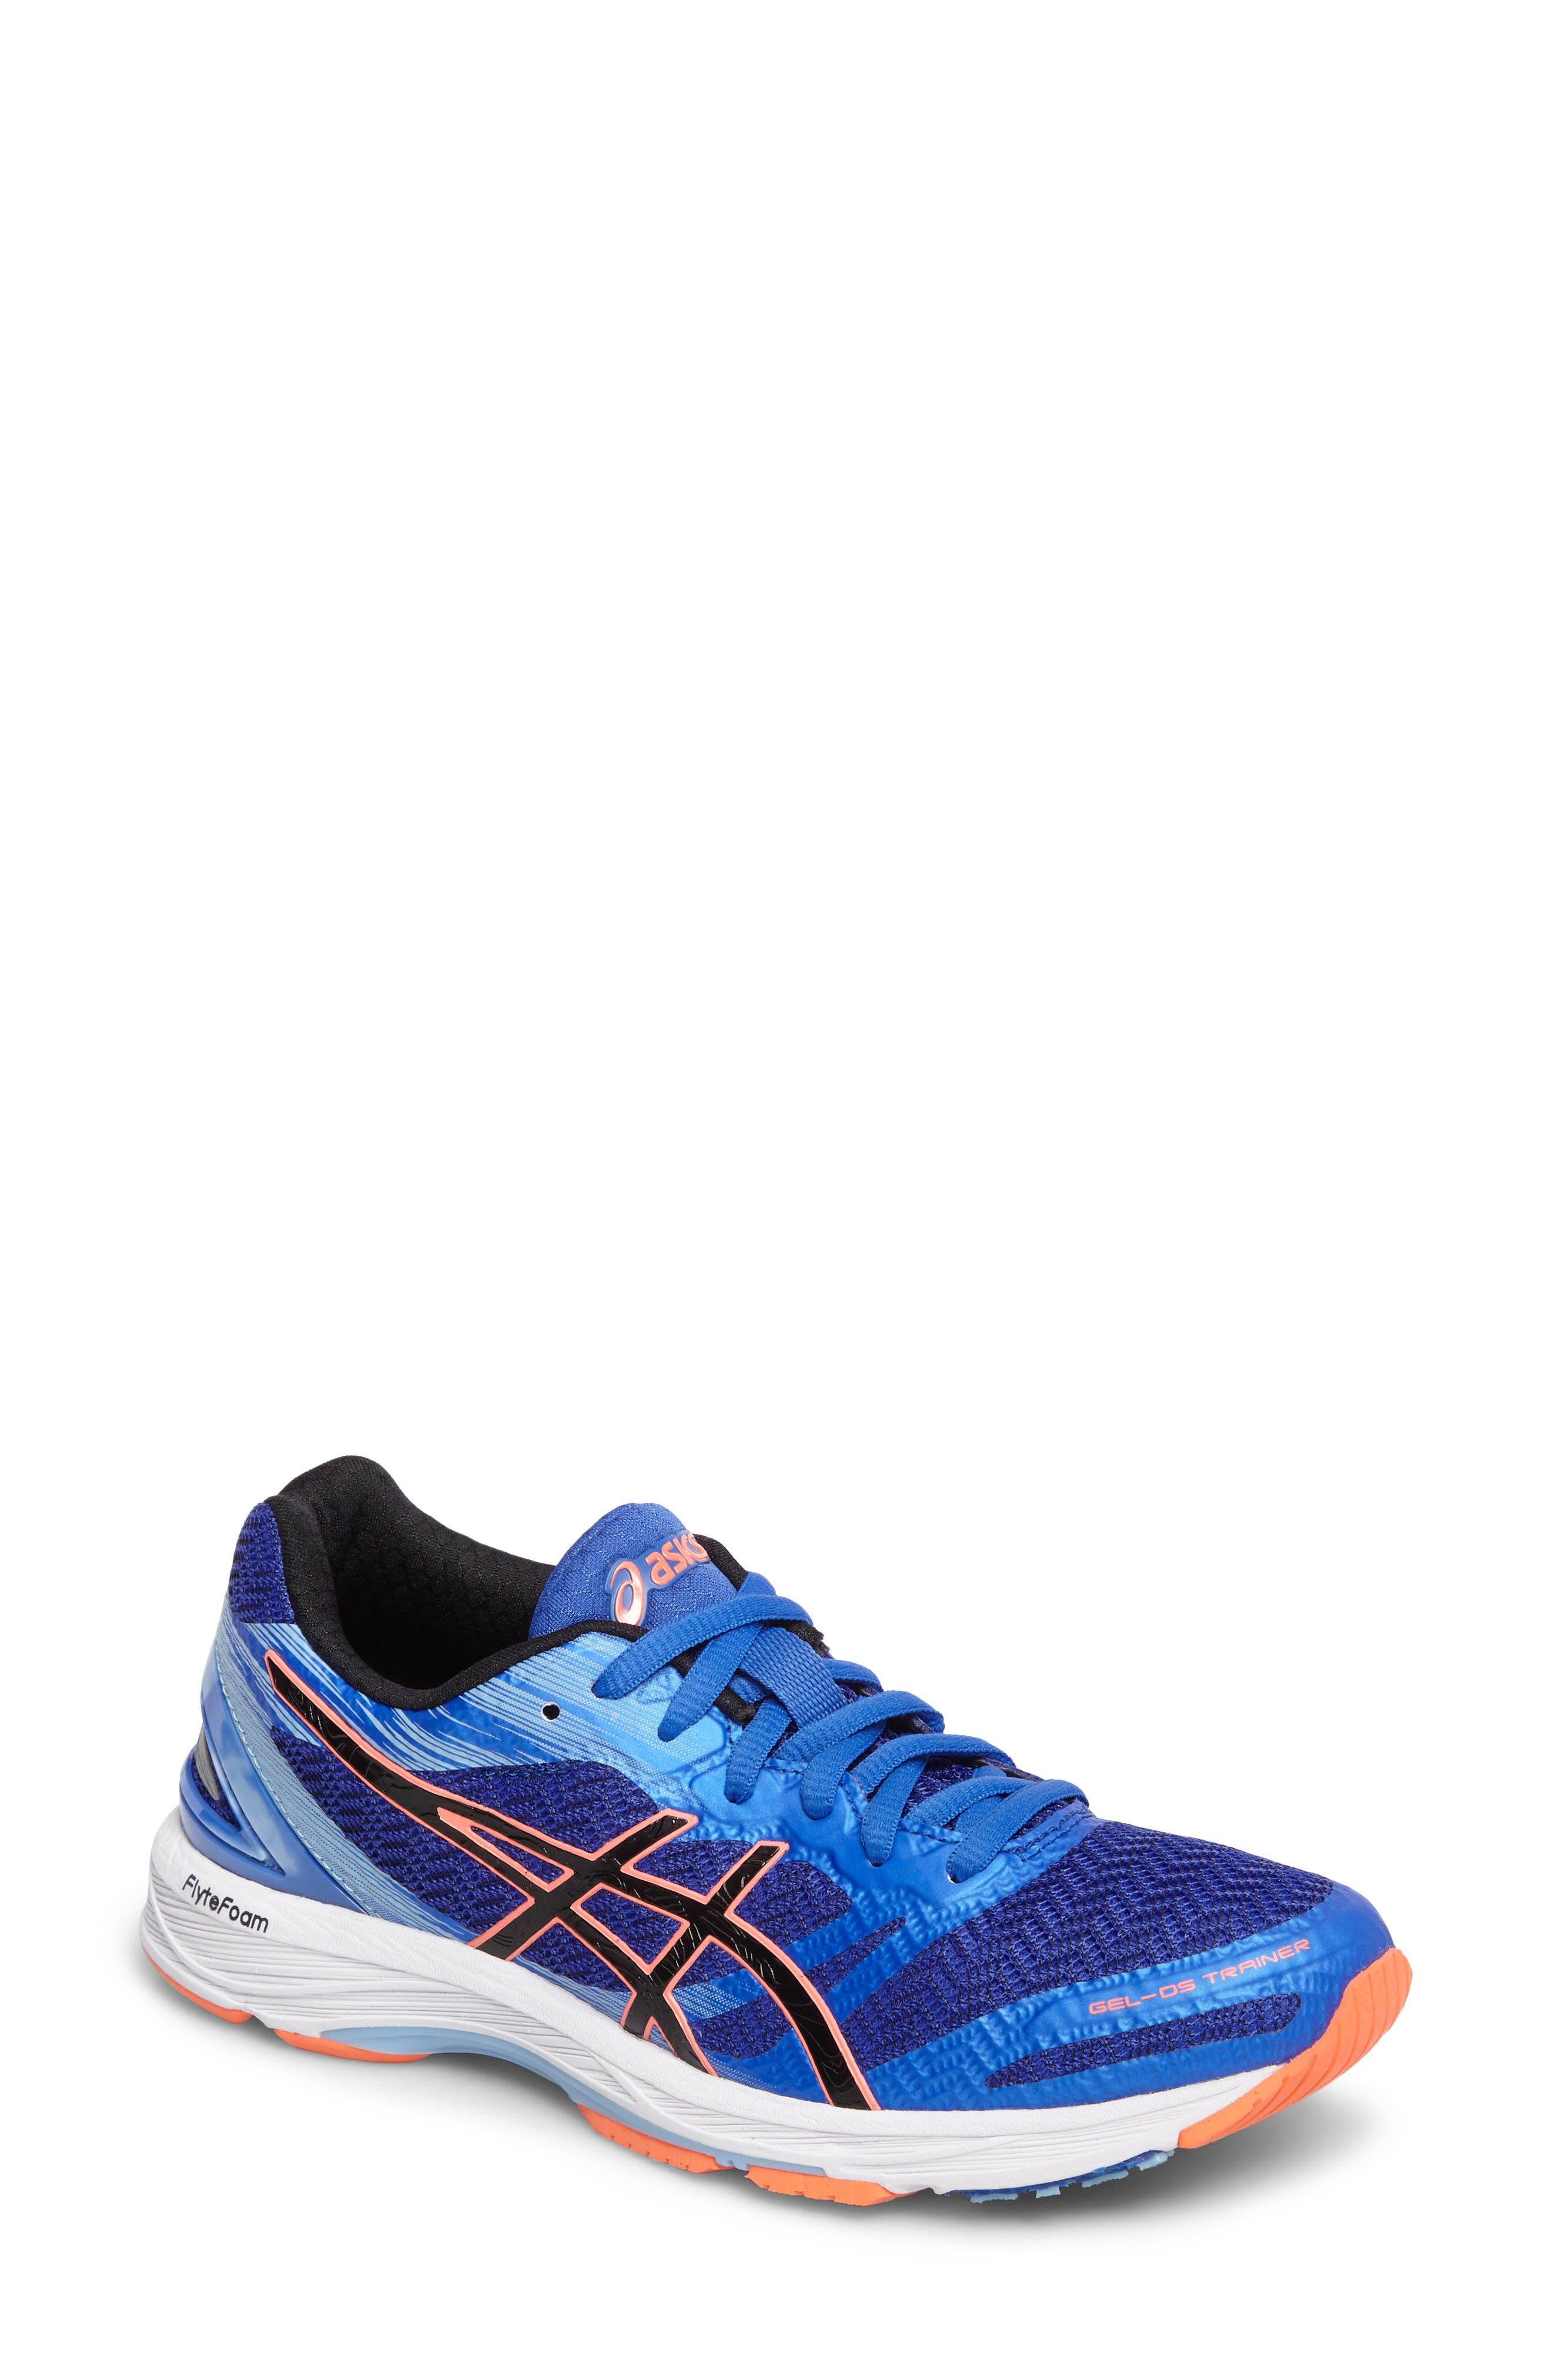 GEL-DS Trainer 22 Running Shoe,                         Main,                         color, 480